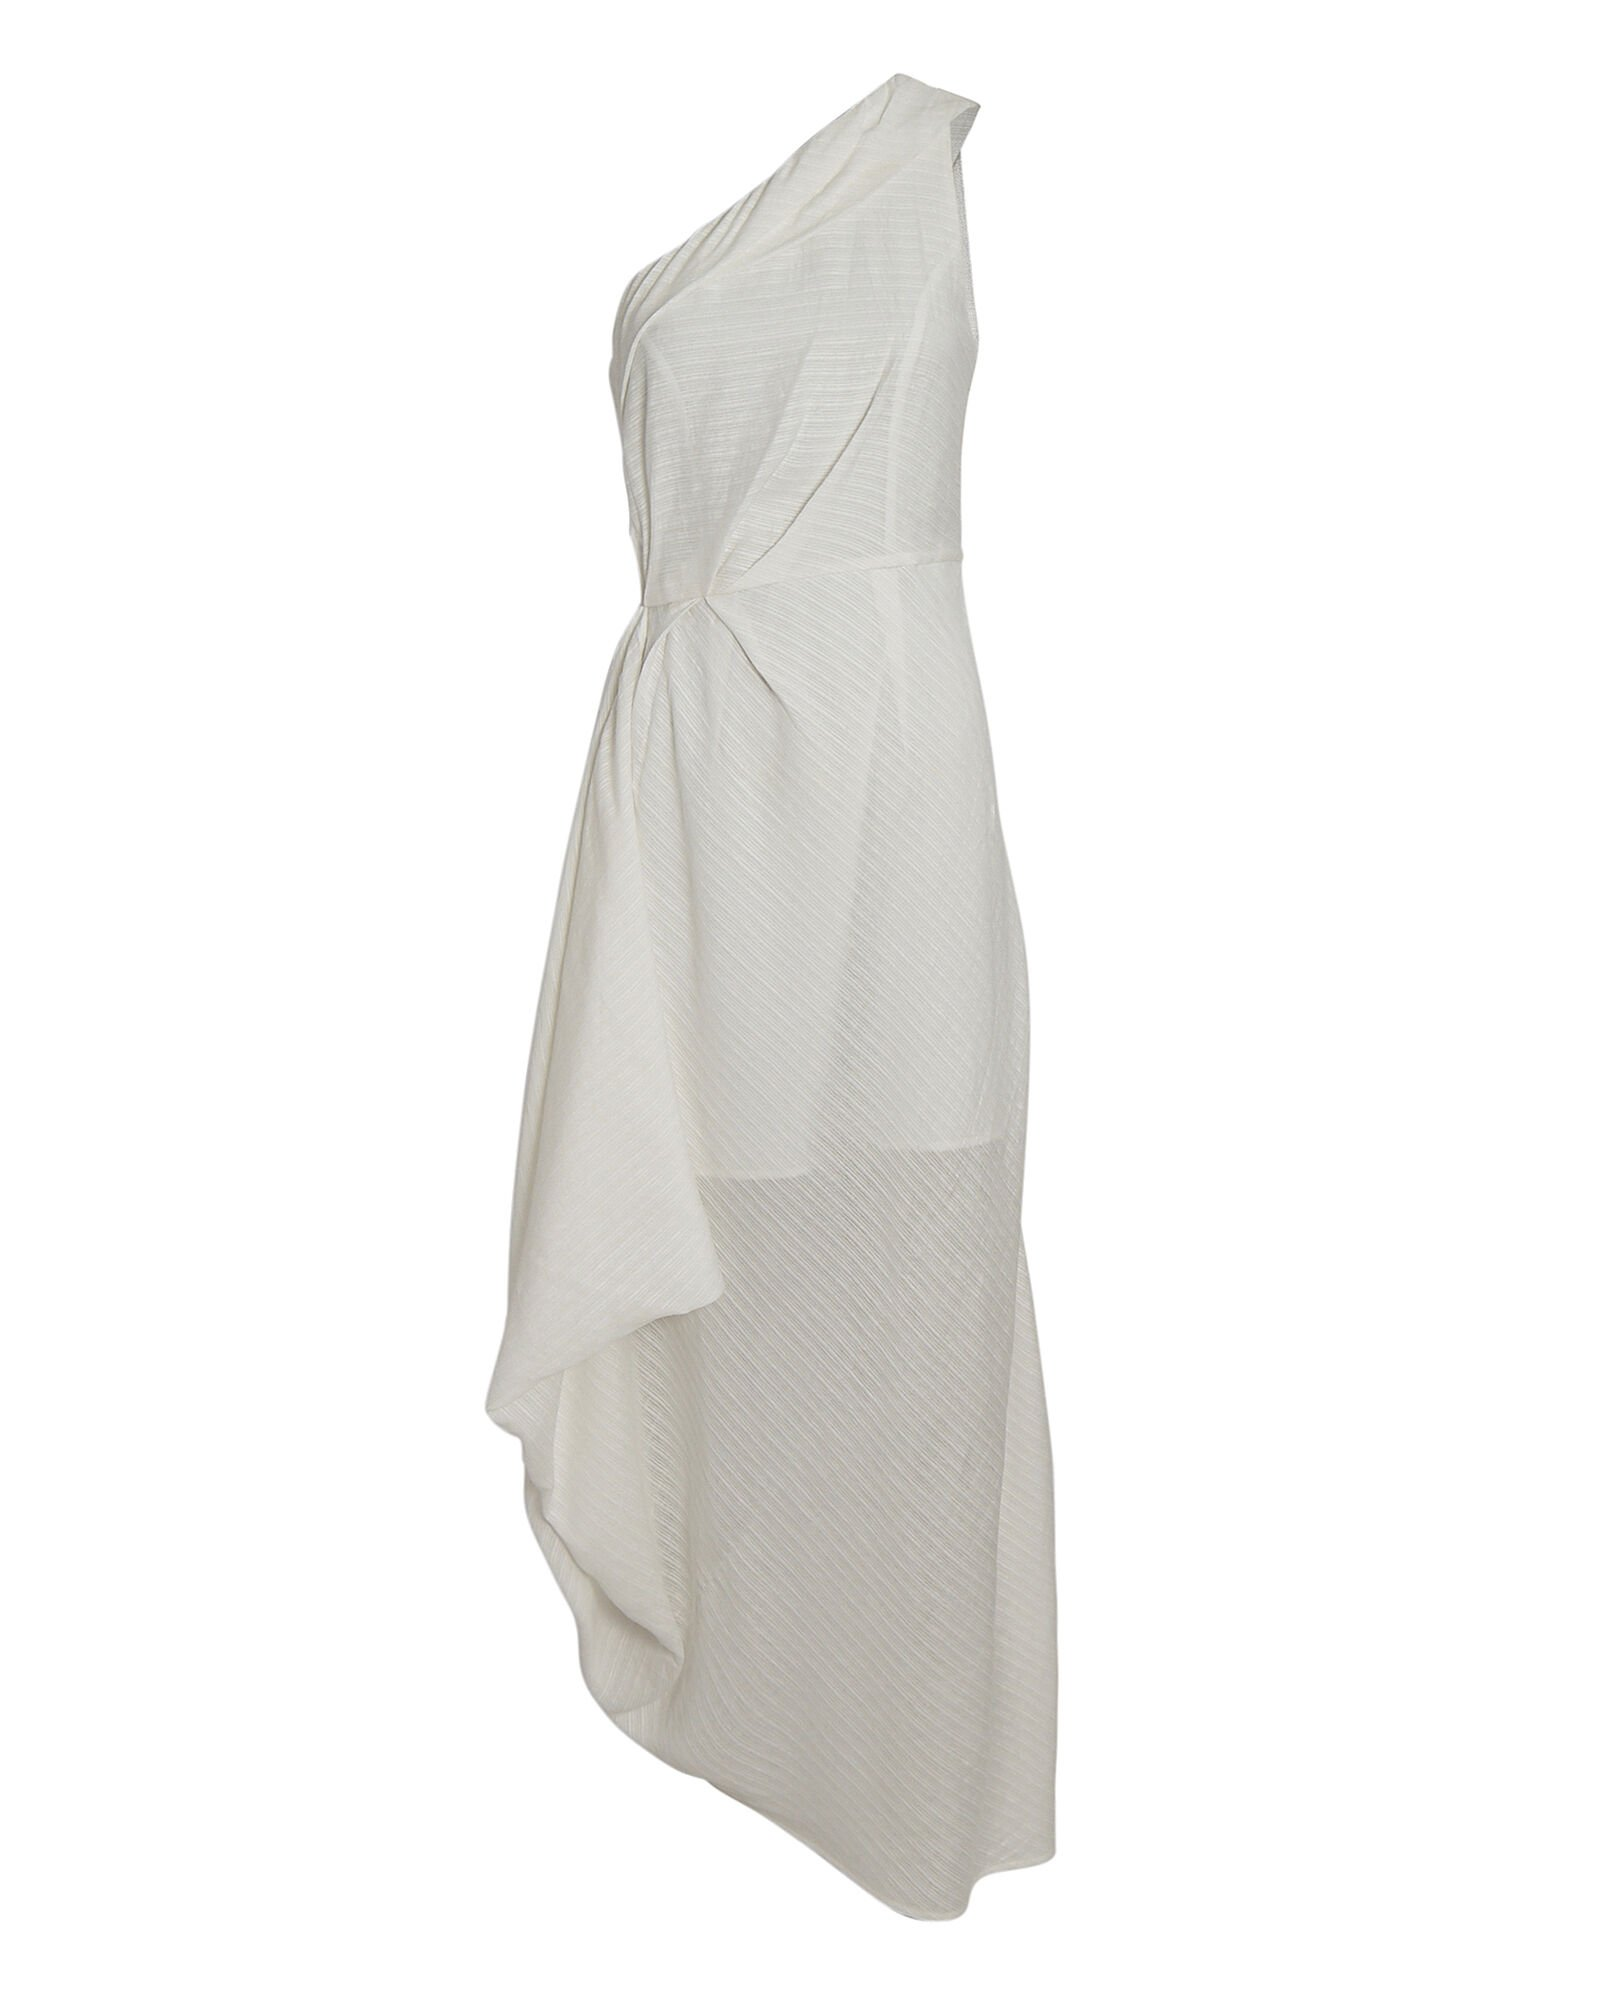 Go On One-Shoulder Midi Dress, IVORY, hi-res